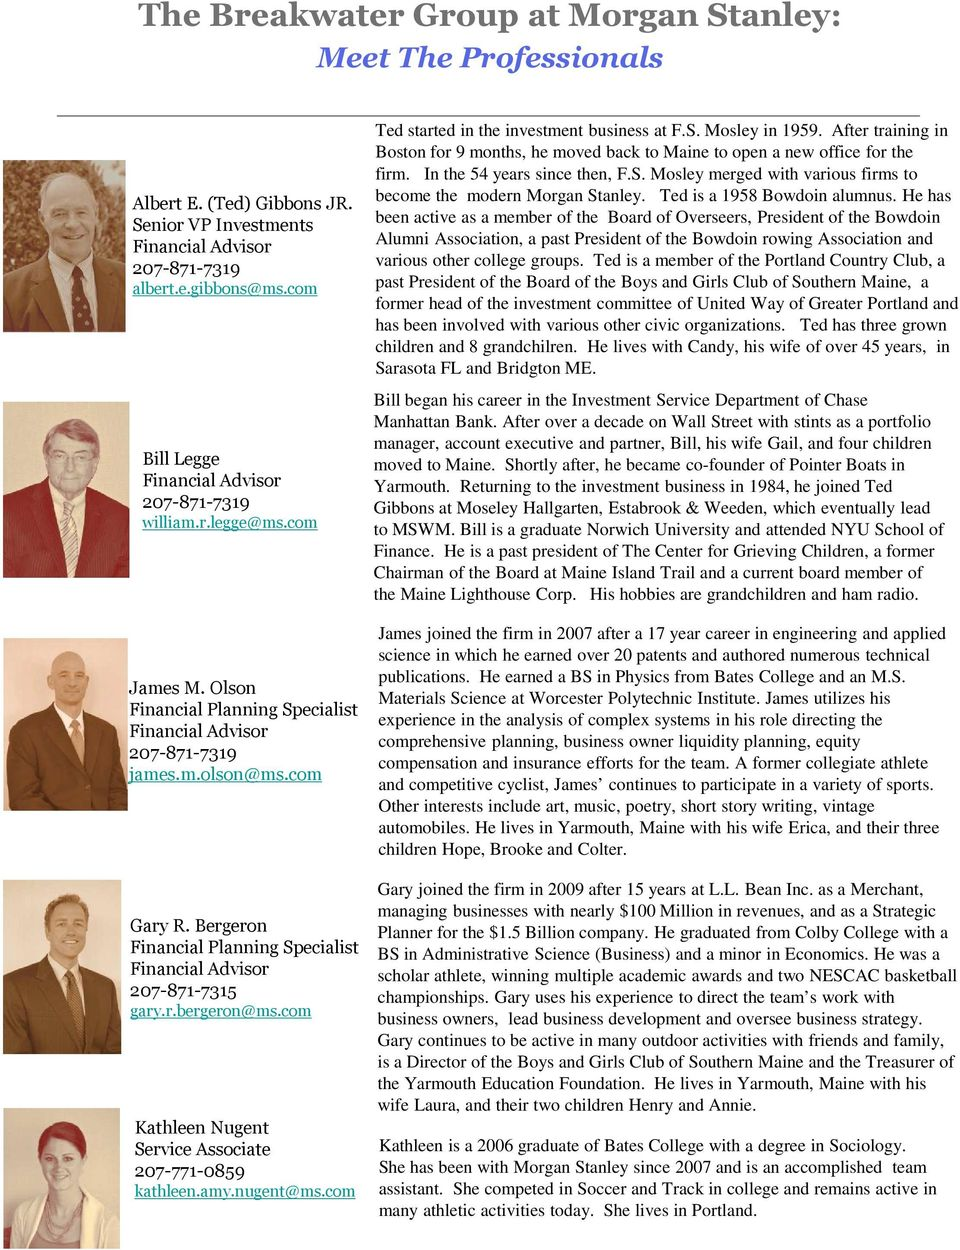 The Breakwater Group at Morgan Stanley Wealth Management - PDF